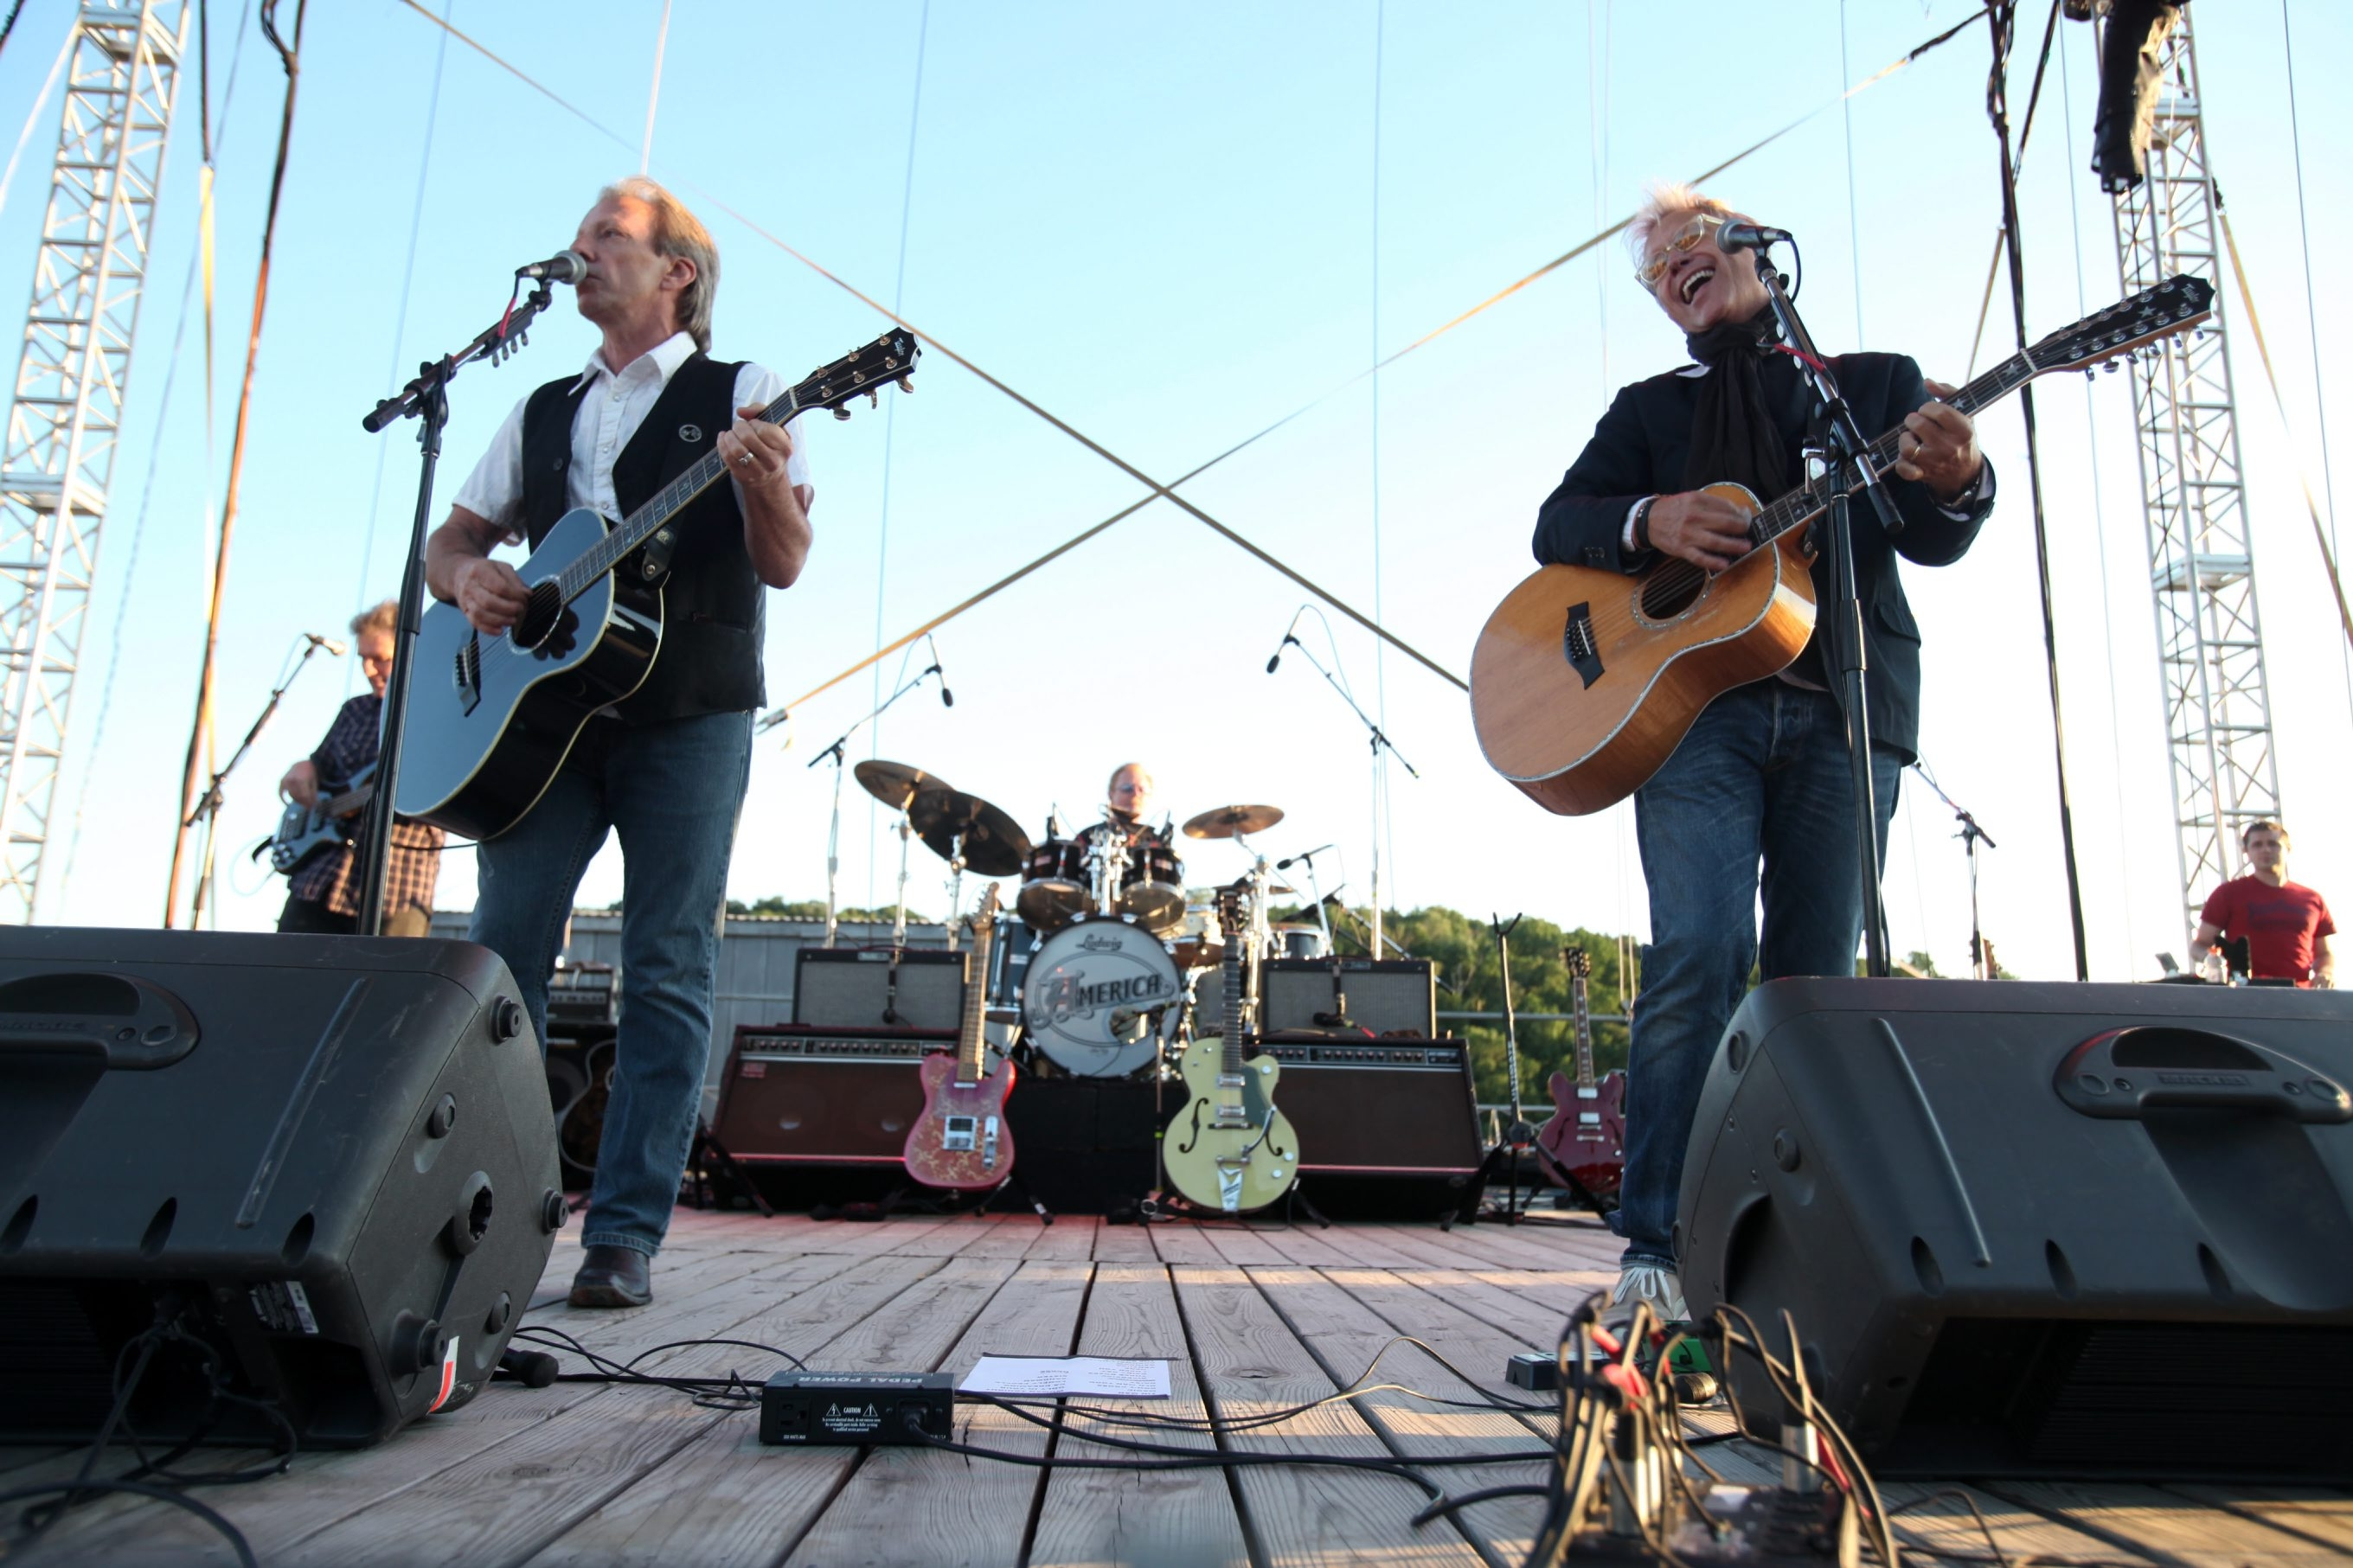 America's Dewey Bunnell, left, and Gerry Beckley , shown at Artpark in 2010, will be playing in the BPO Rocks! series next March.